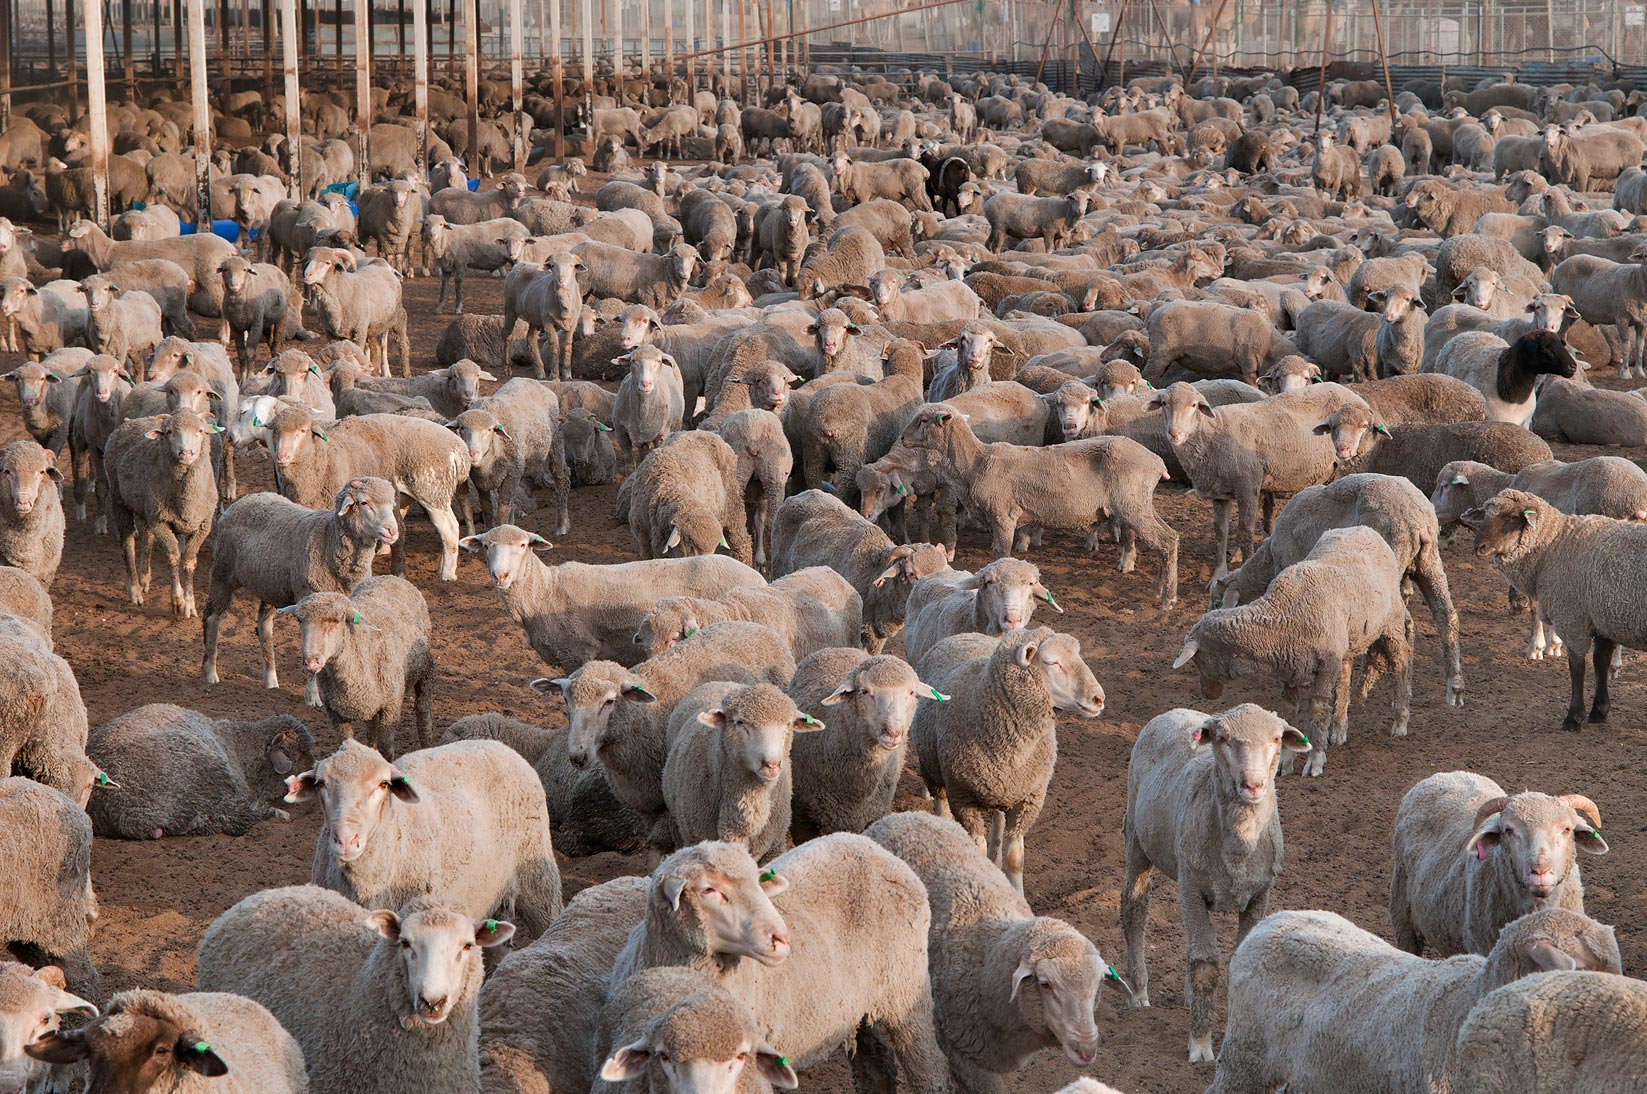 Australian sheep at sunrise in a feedlot of...Wholesale Markets area. Doha, Qatar